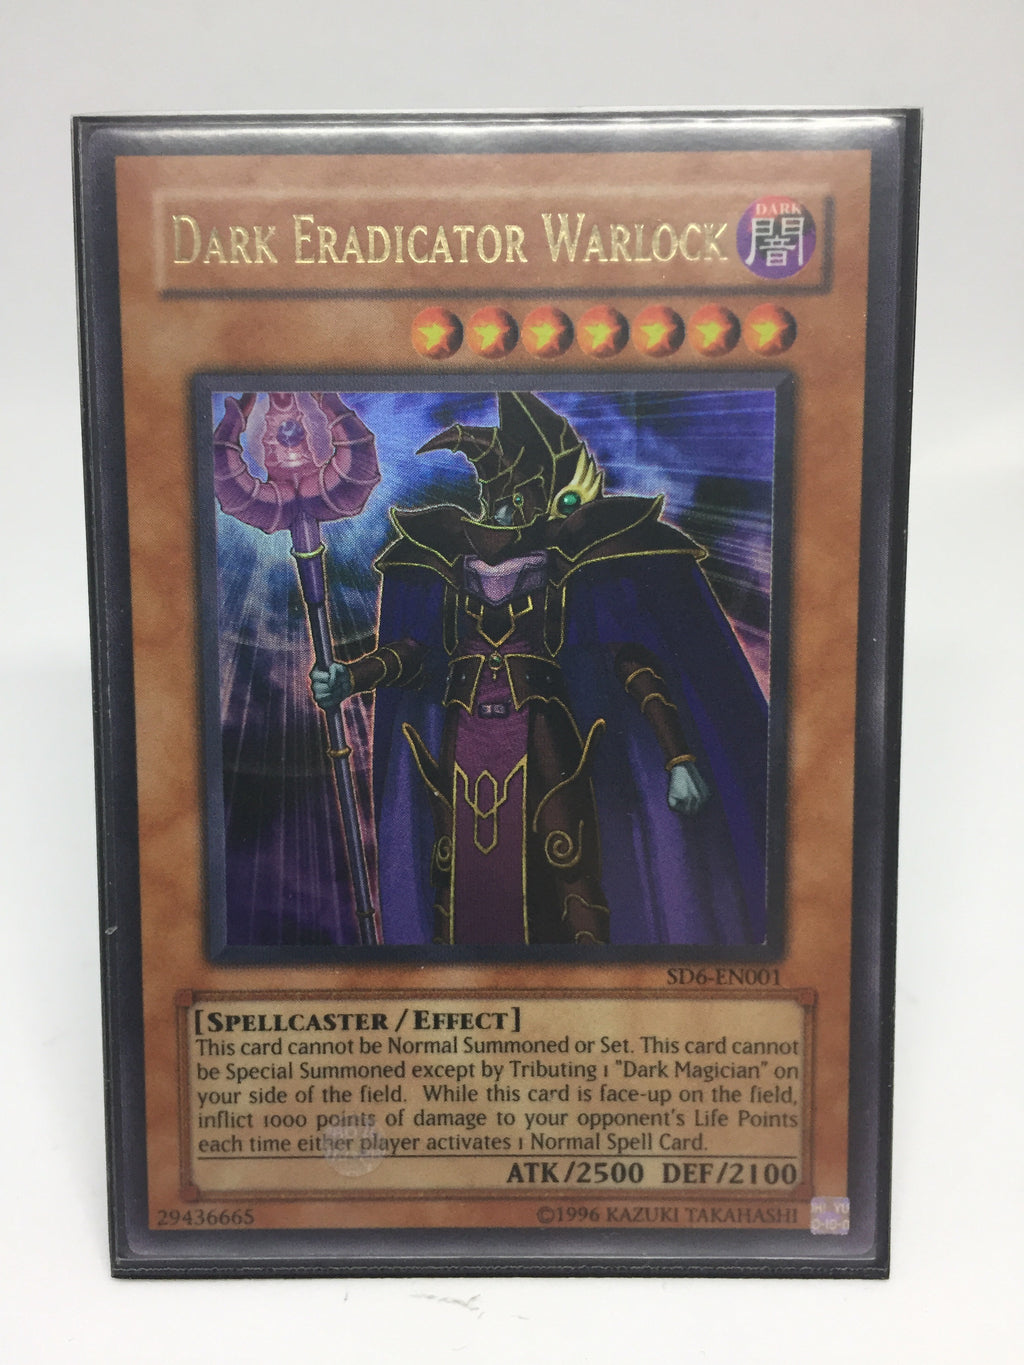 Dark Eradicator Warlock / Ultra - SD6-EN001